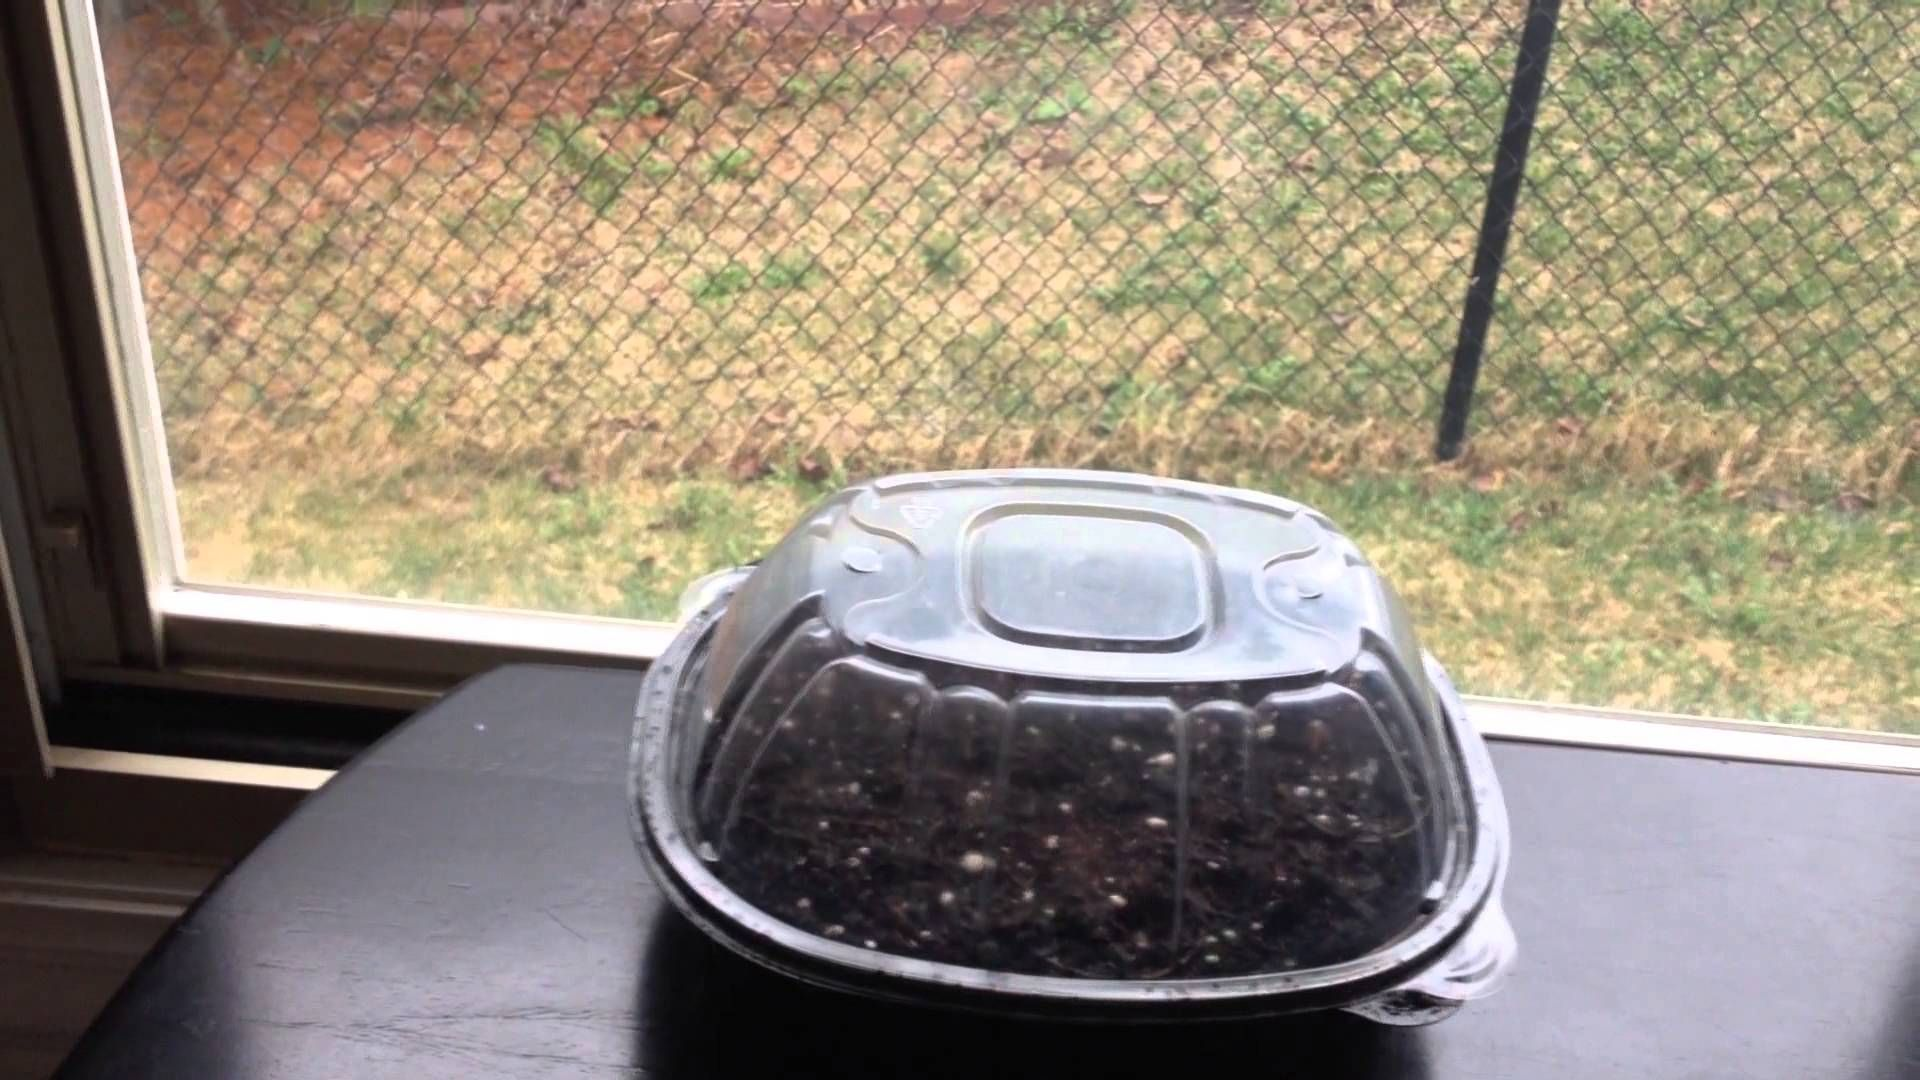 How to make a diy seedling starter greenhouse kit with